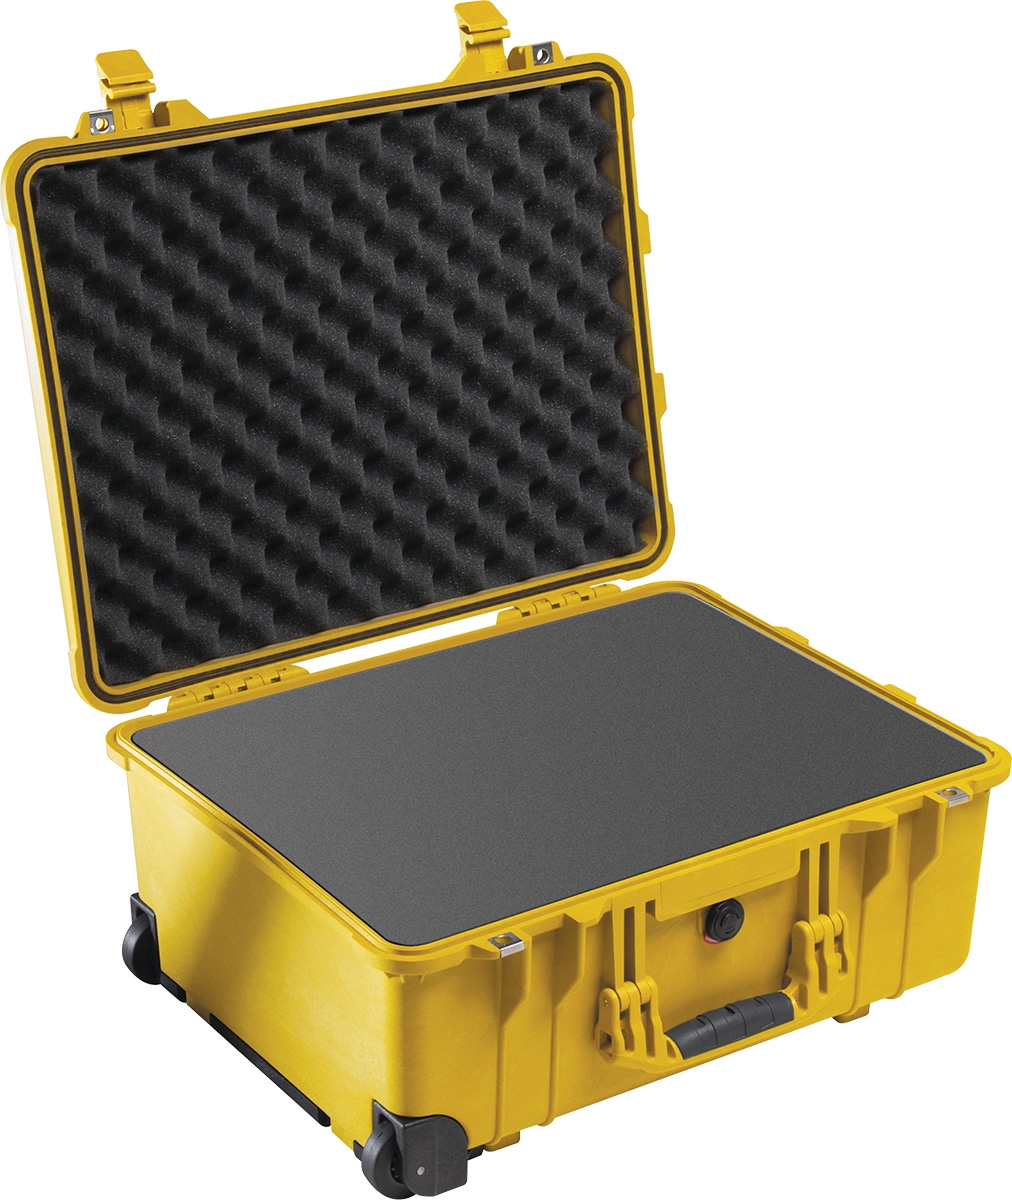 Pelican 1560 Protector Case (COLOR: YELLOW)